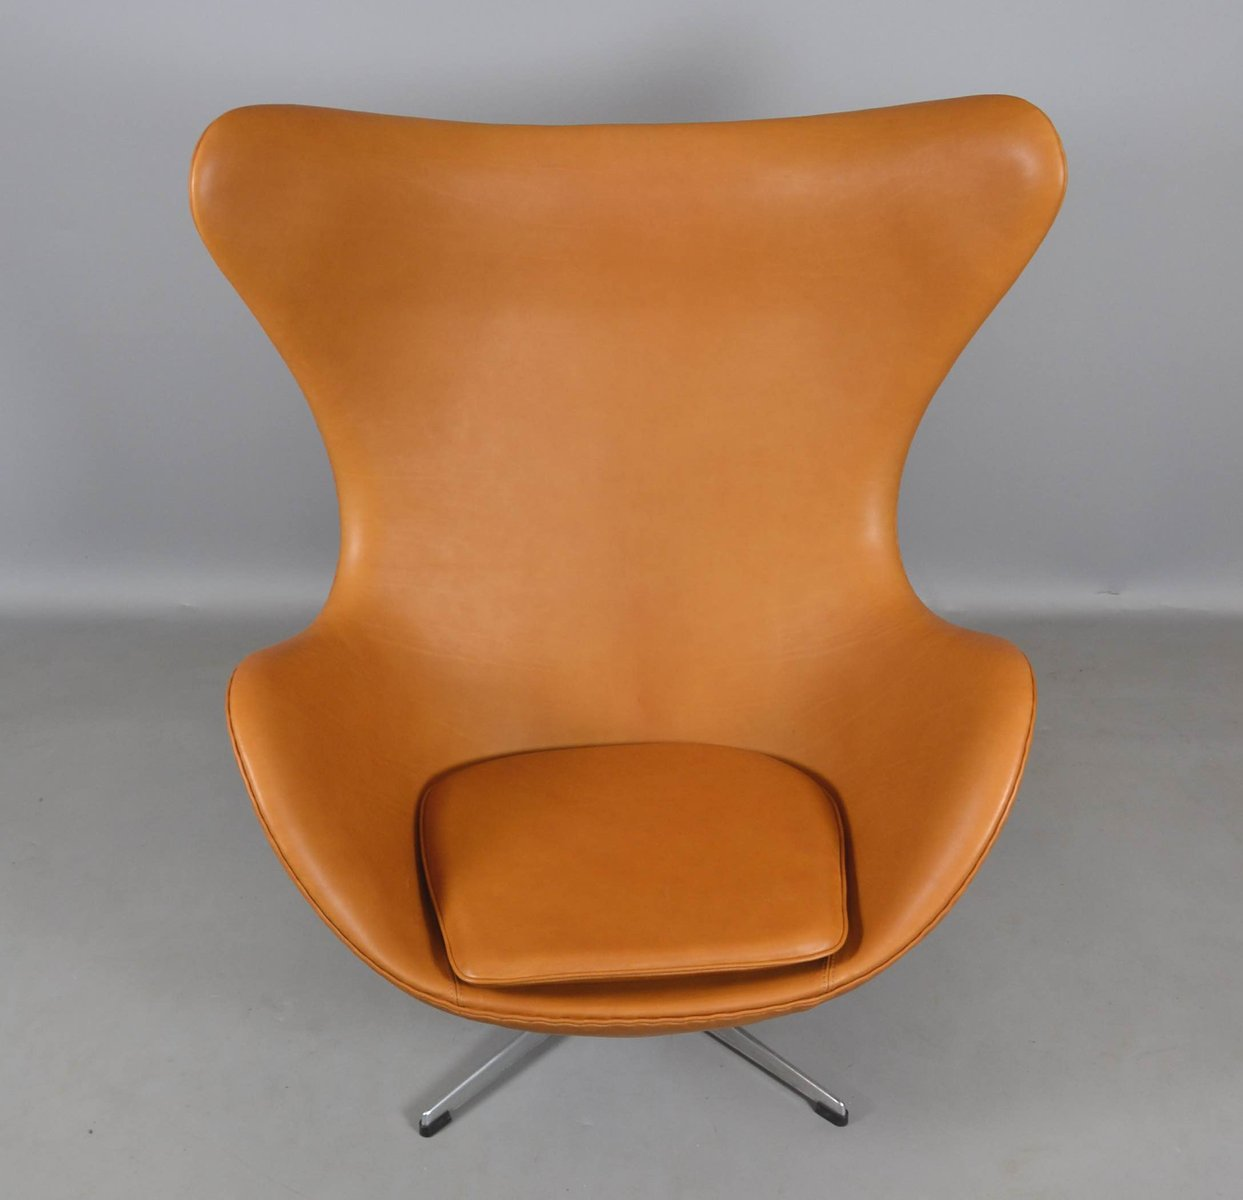 Charmant Awesome Excellent Leder Egg Chair Von Arne Jacobsen Fr Fritz Hansen Er Bei  Pamono Kaufen With